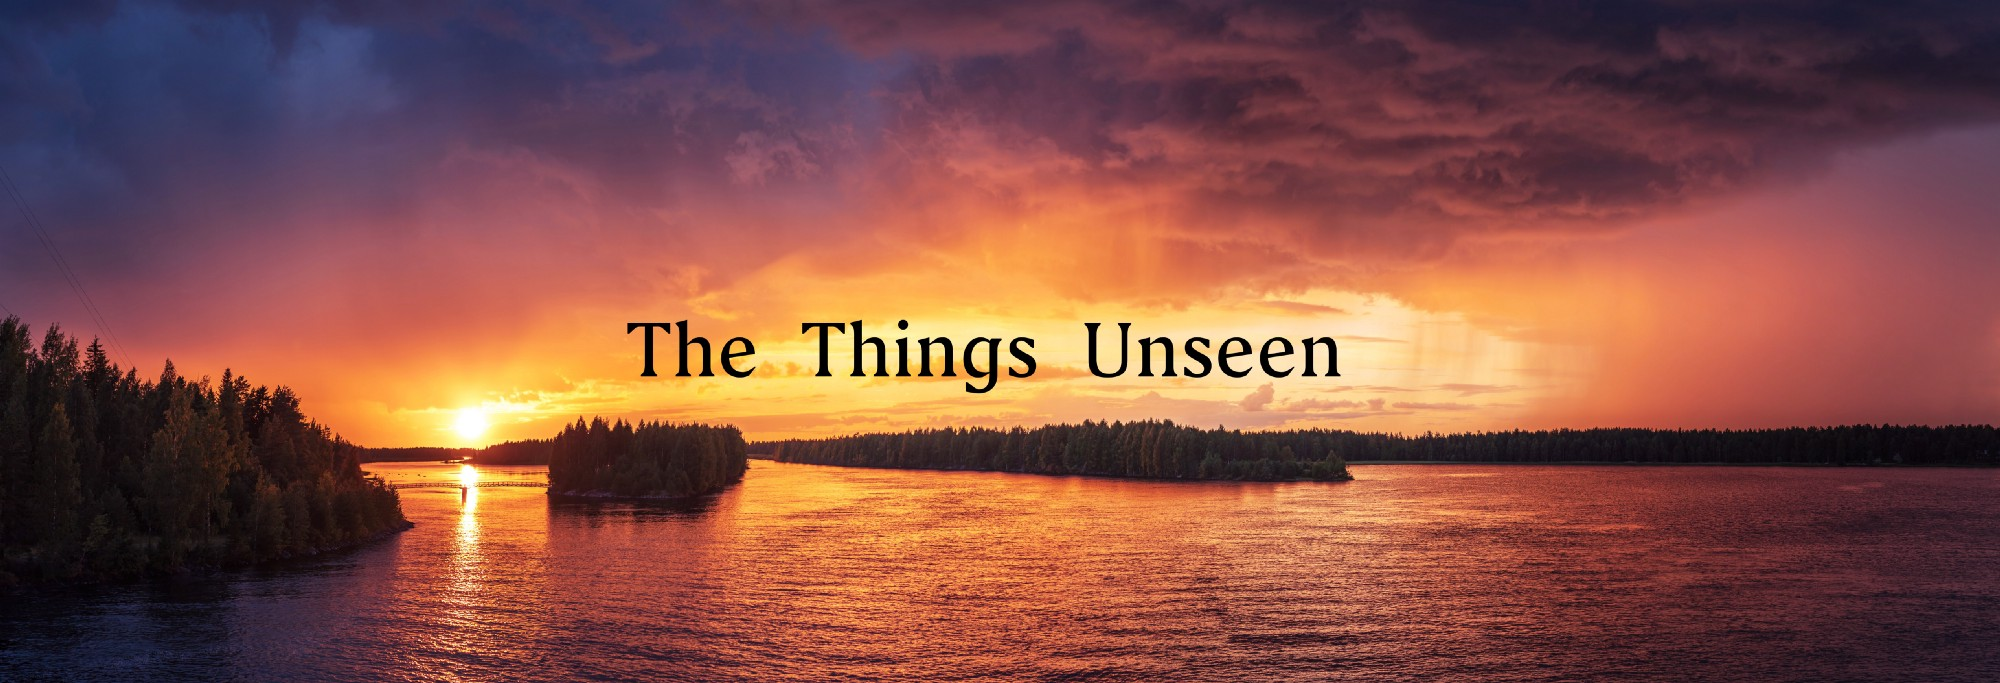 The Things Unseen